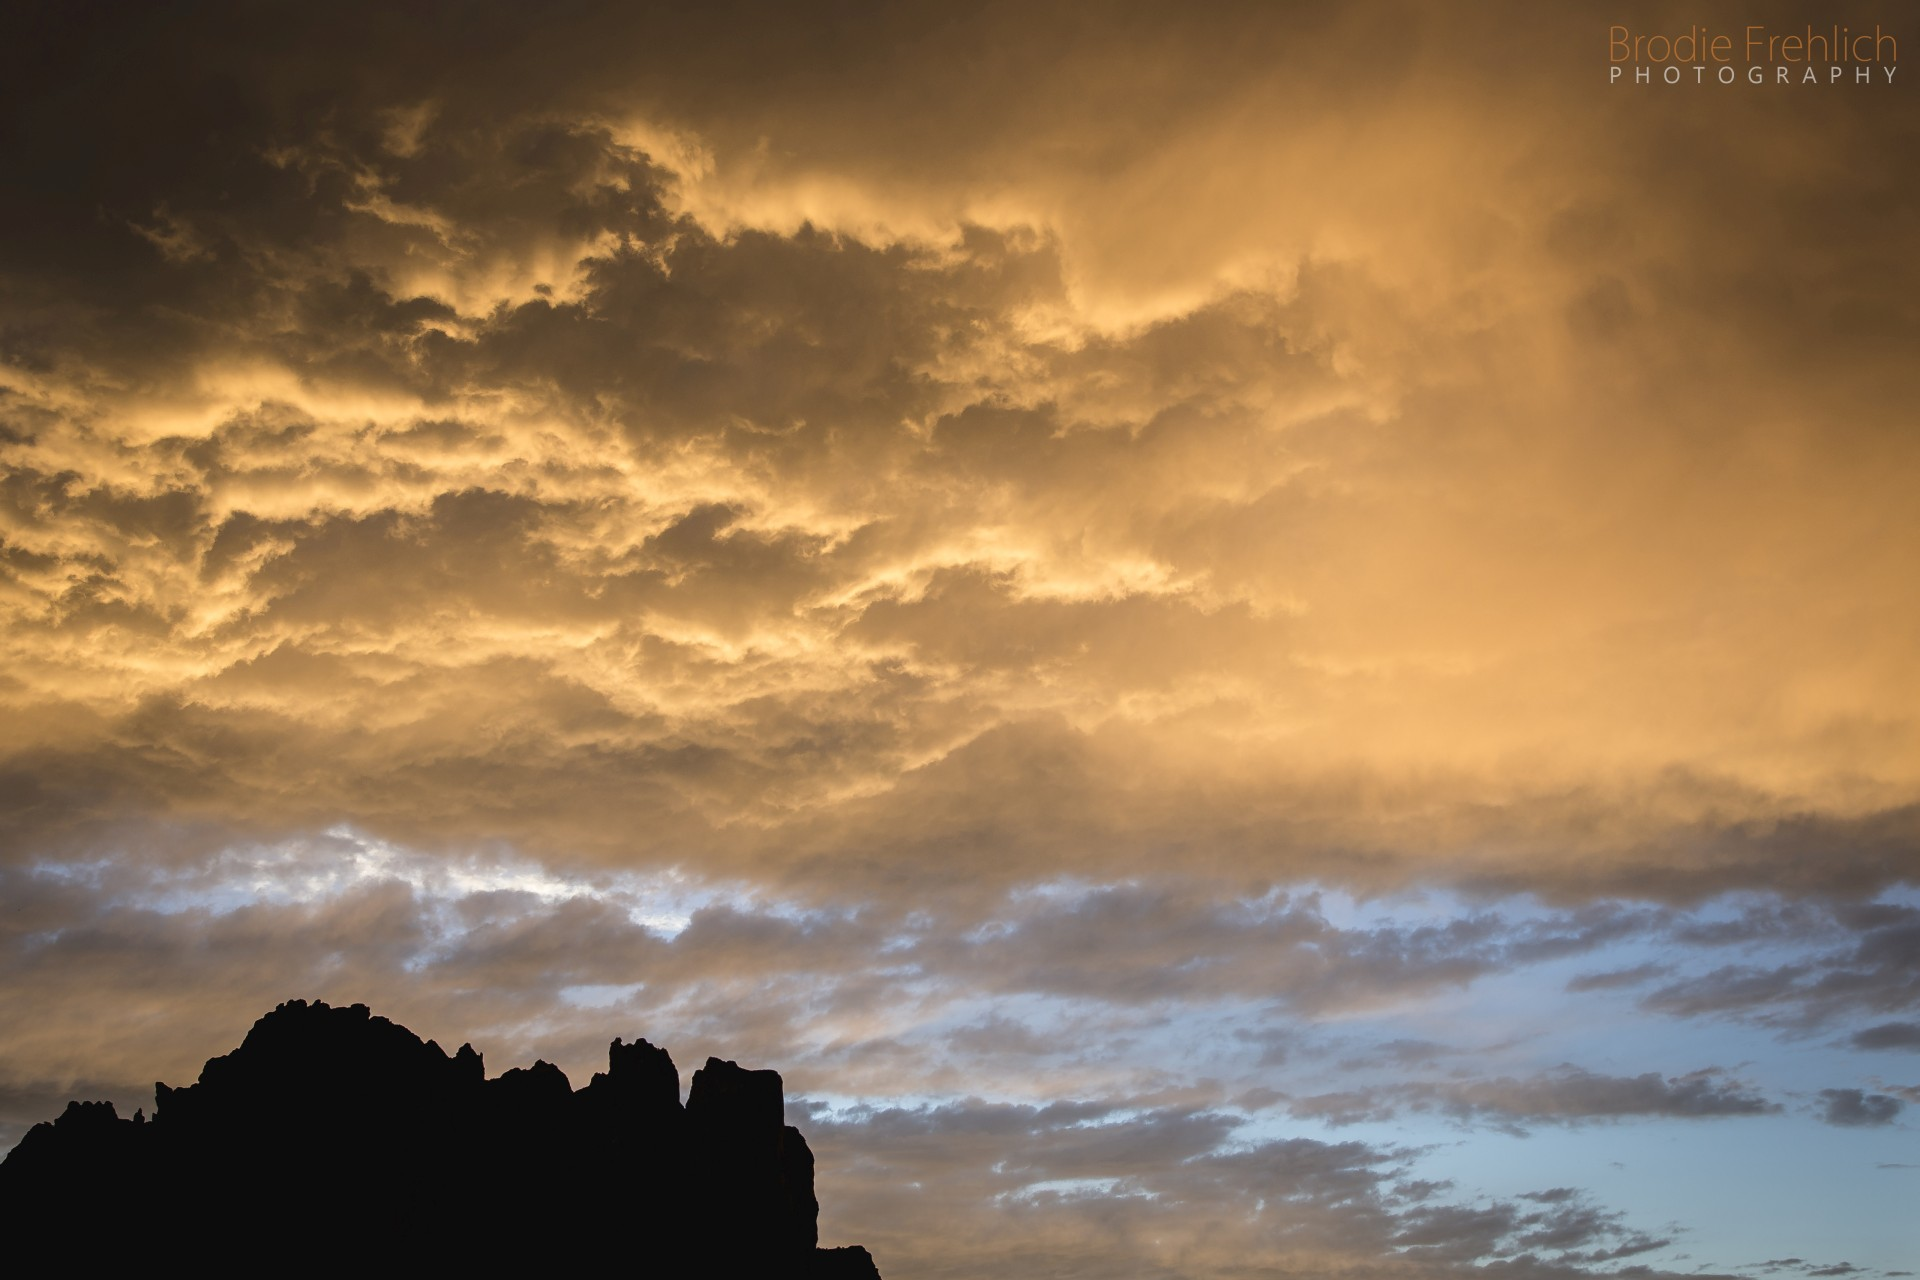 2014 Landscapes - Smith Rock, OR